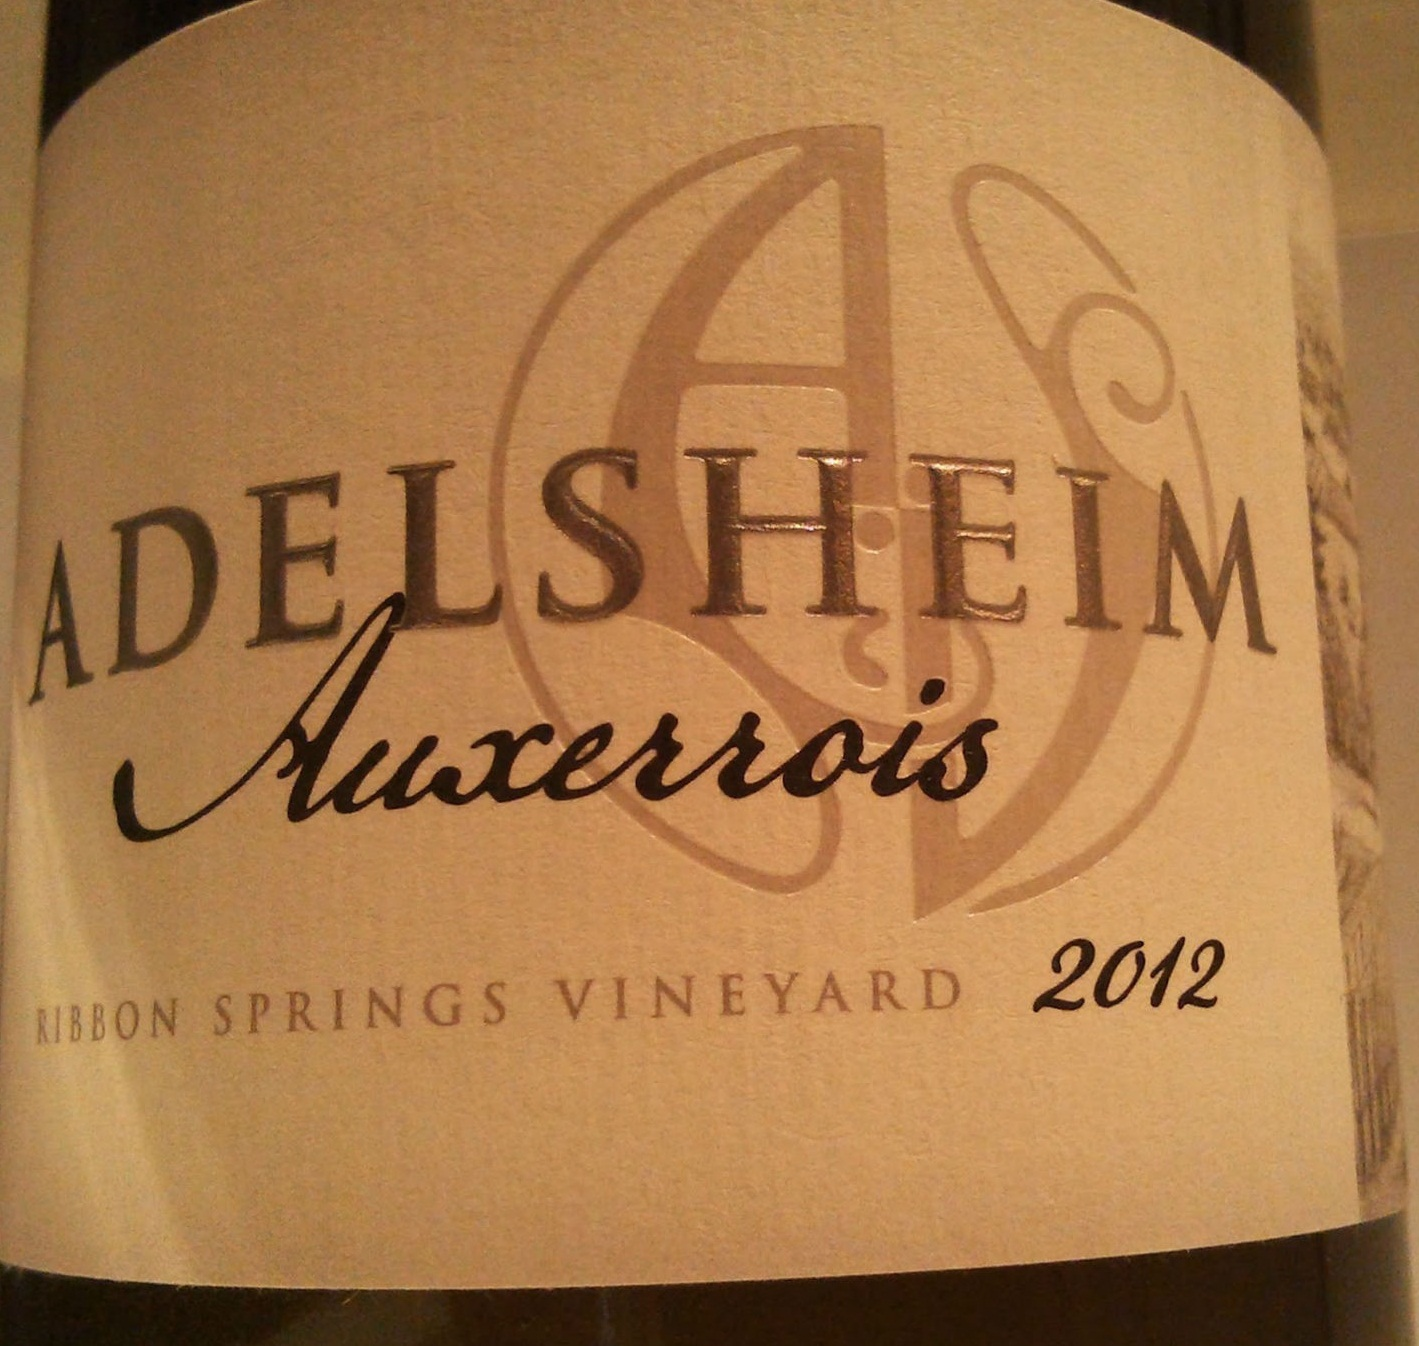 爱德森涌泉园欧塞瓦干白Adelsheim Vineyard Ribbon Springs Vineyard Auxerrois